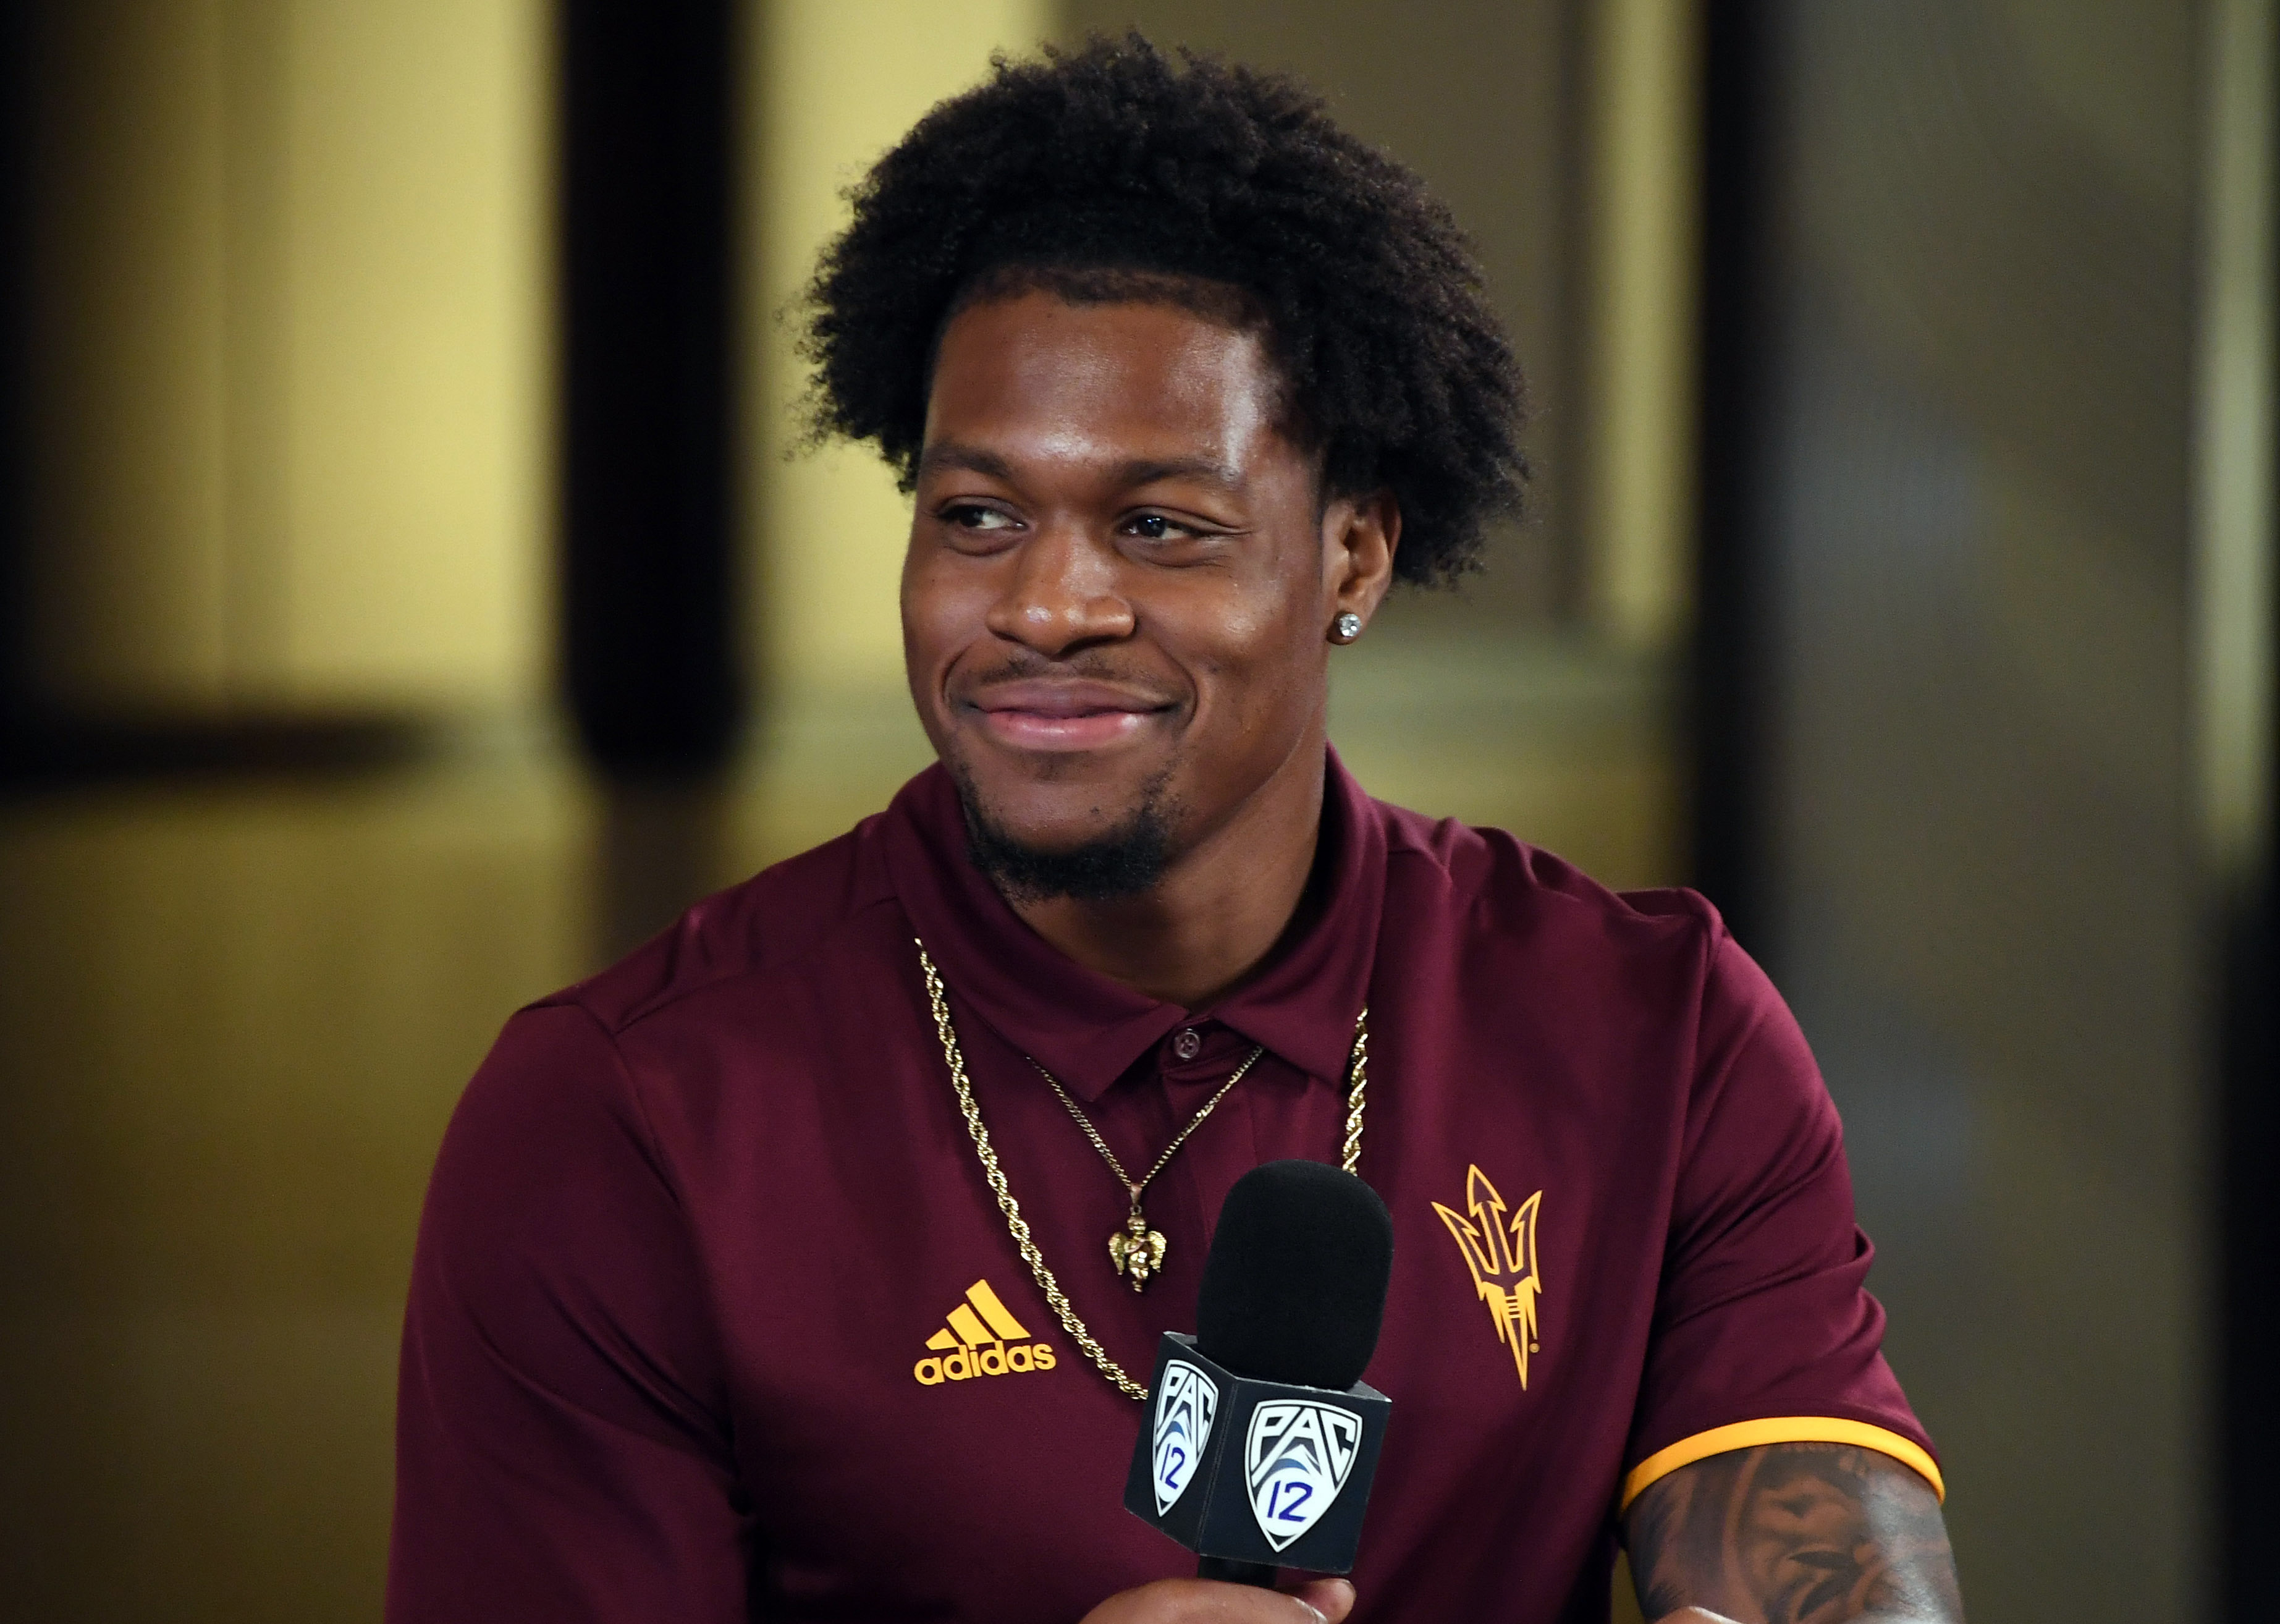 N'Keal Harry looking forward to working with demanding Tom Brady: 'I want to get coached hard'